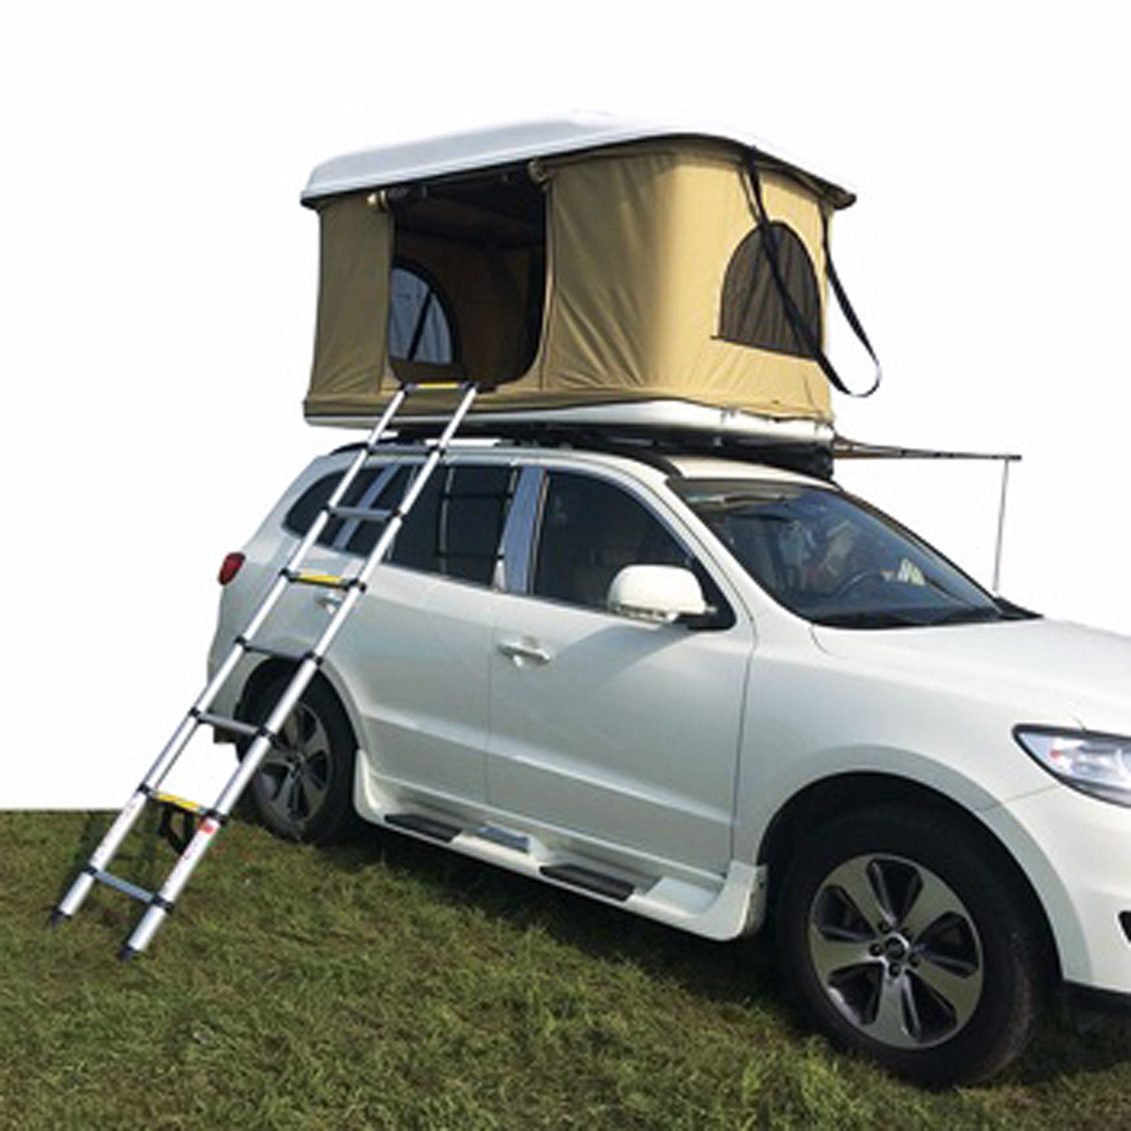 separation shoes a6acd b963e [Hot Item] Pop-up Car Top Tent Canvas Hydraulic Roof Top Tent